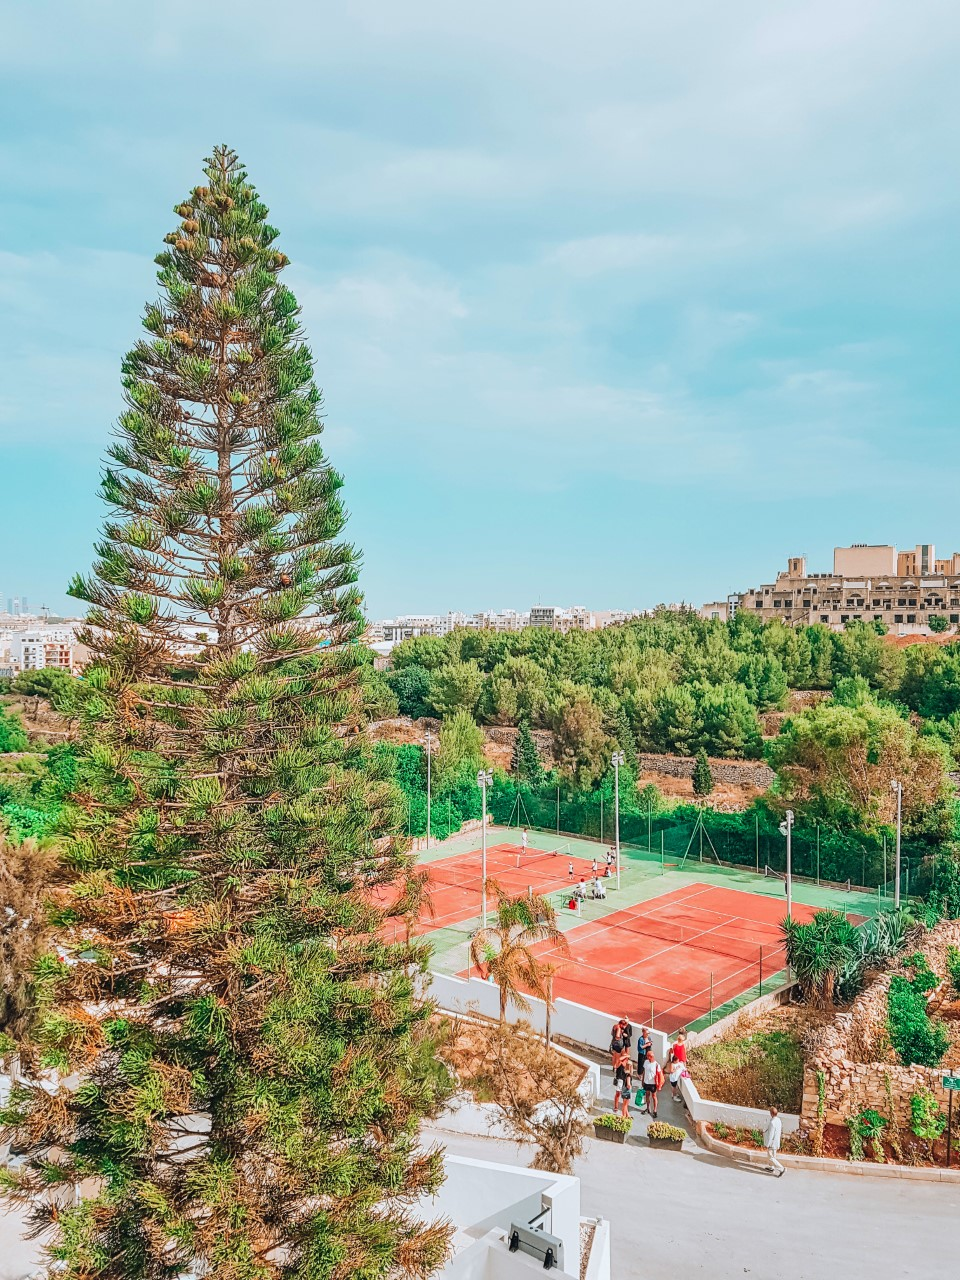 Challenge yourself to a tennis match on one of our on-site courts!